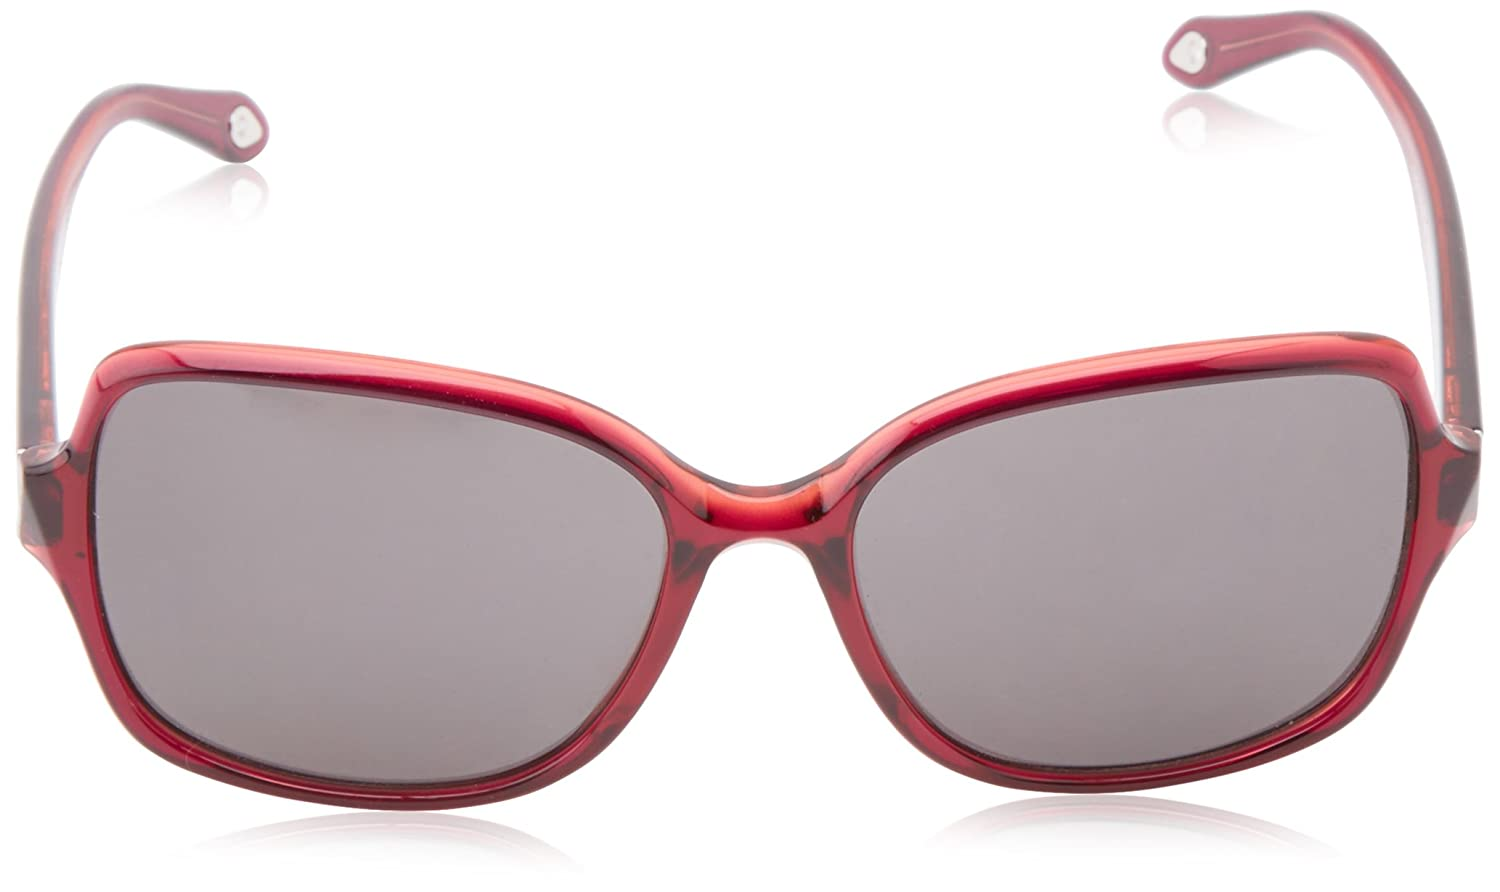 Givenchy Sonnenbrille SGV 873-N18 (58 mm) rot 6uSRDS